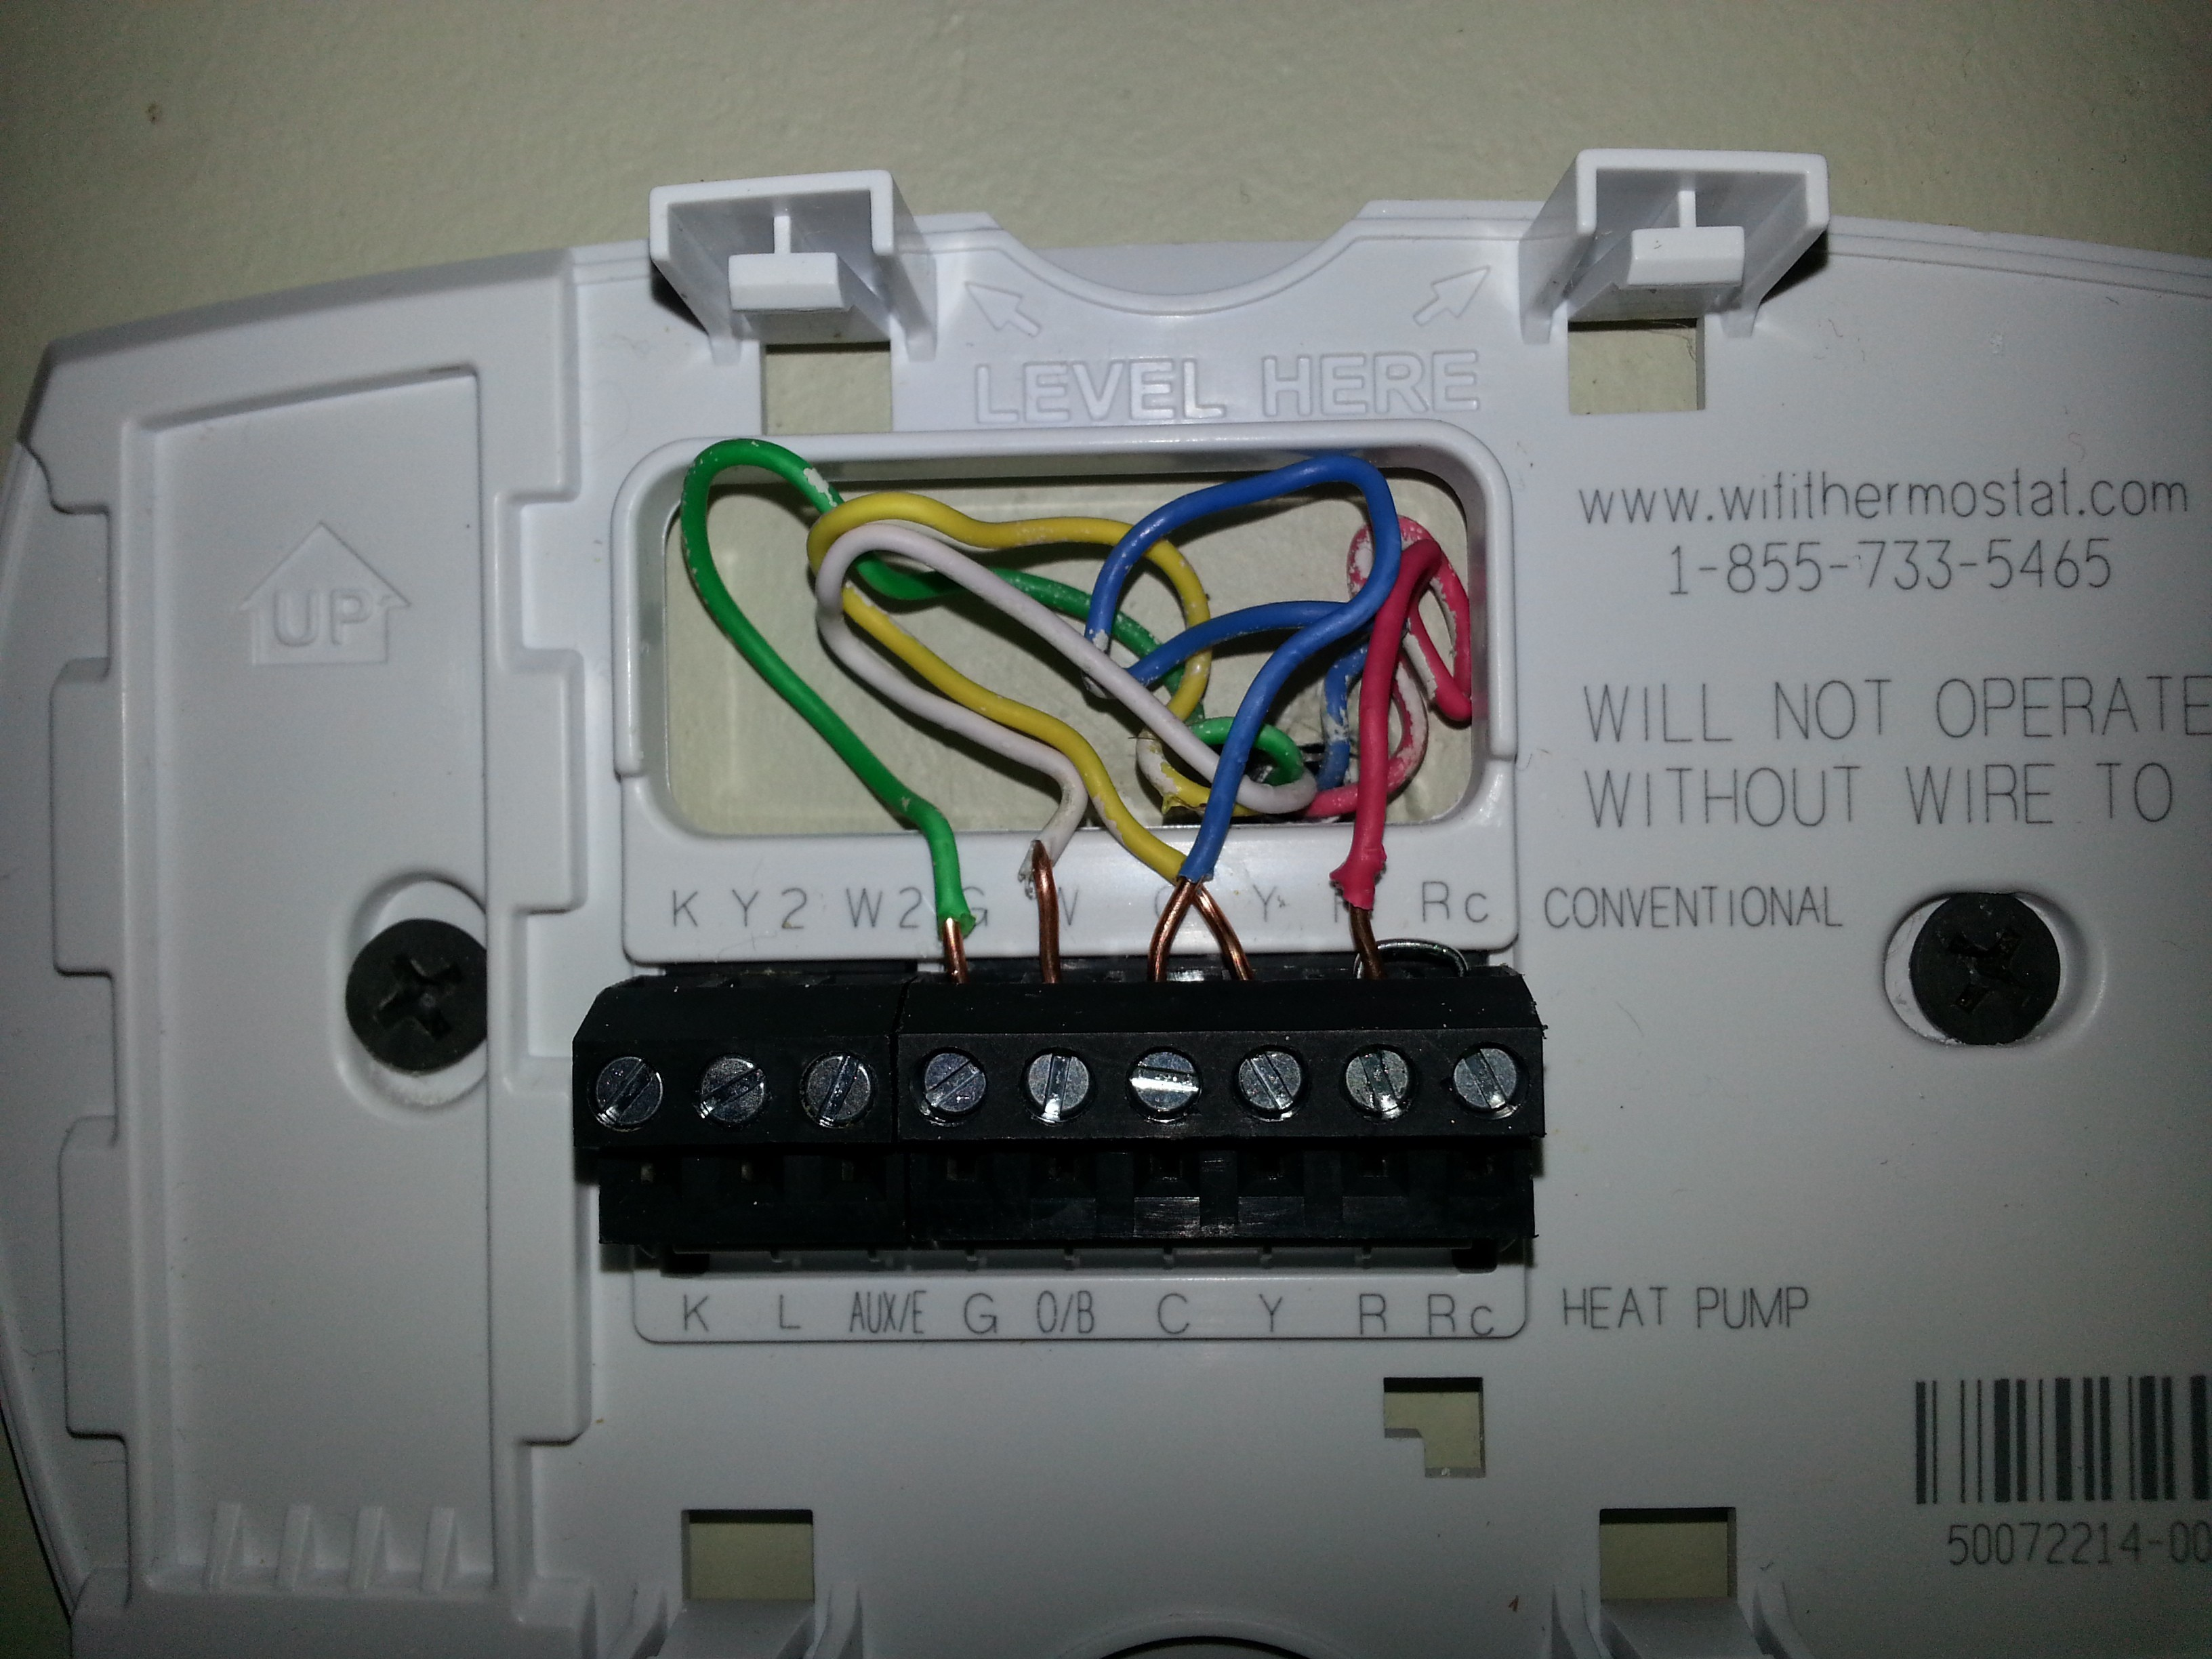 Honeywell thermostat Wiring Diagrams Honeywell Mechanical thermostat Wiring Diagram Save Honeywell Of Honeywell thermostat Wiring Diagrams